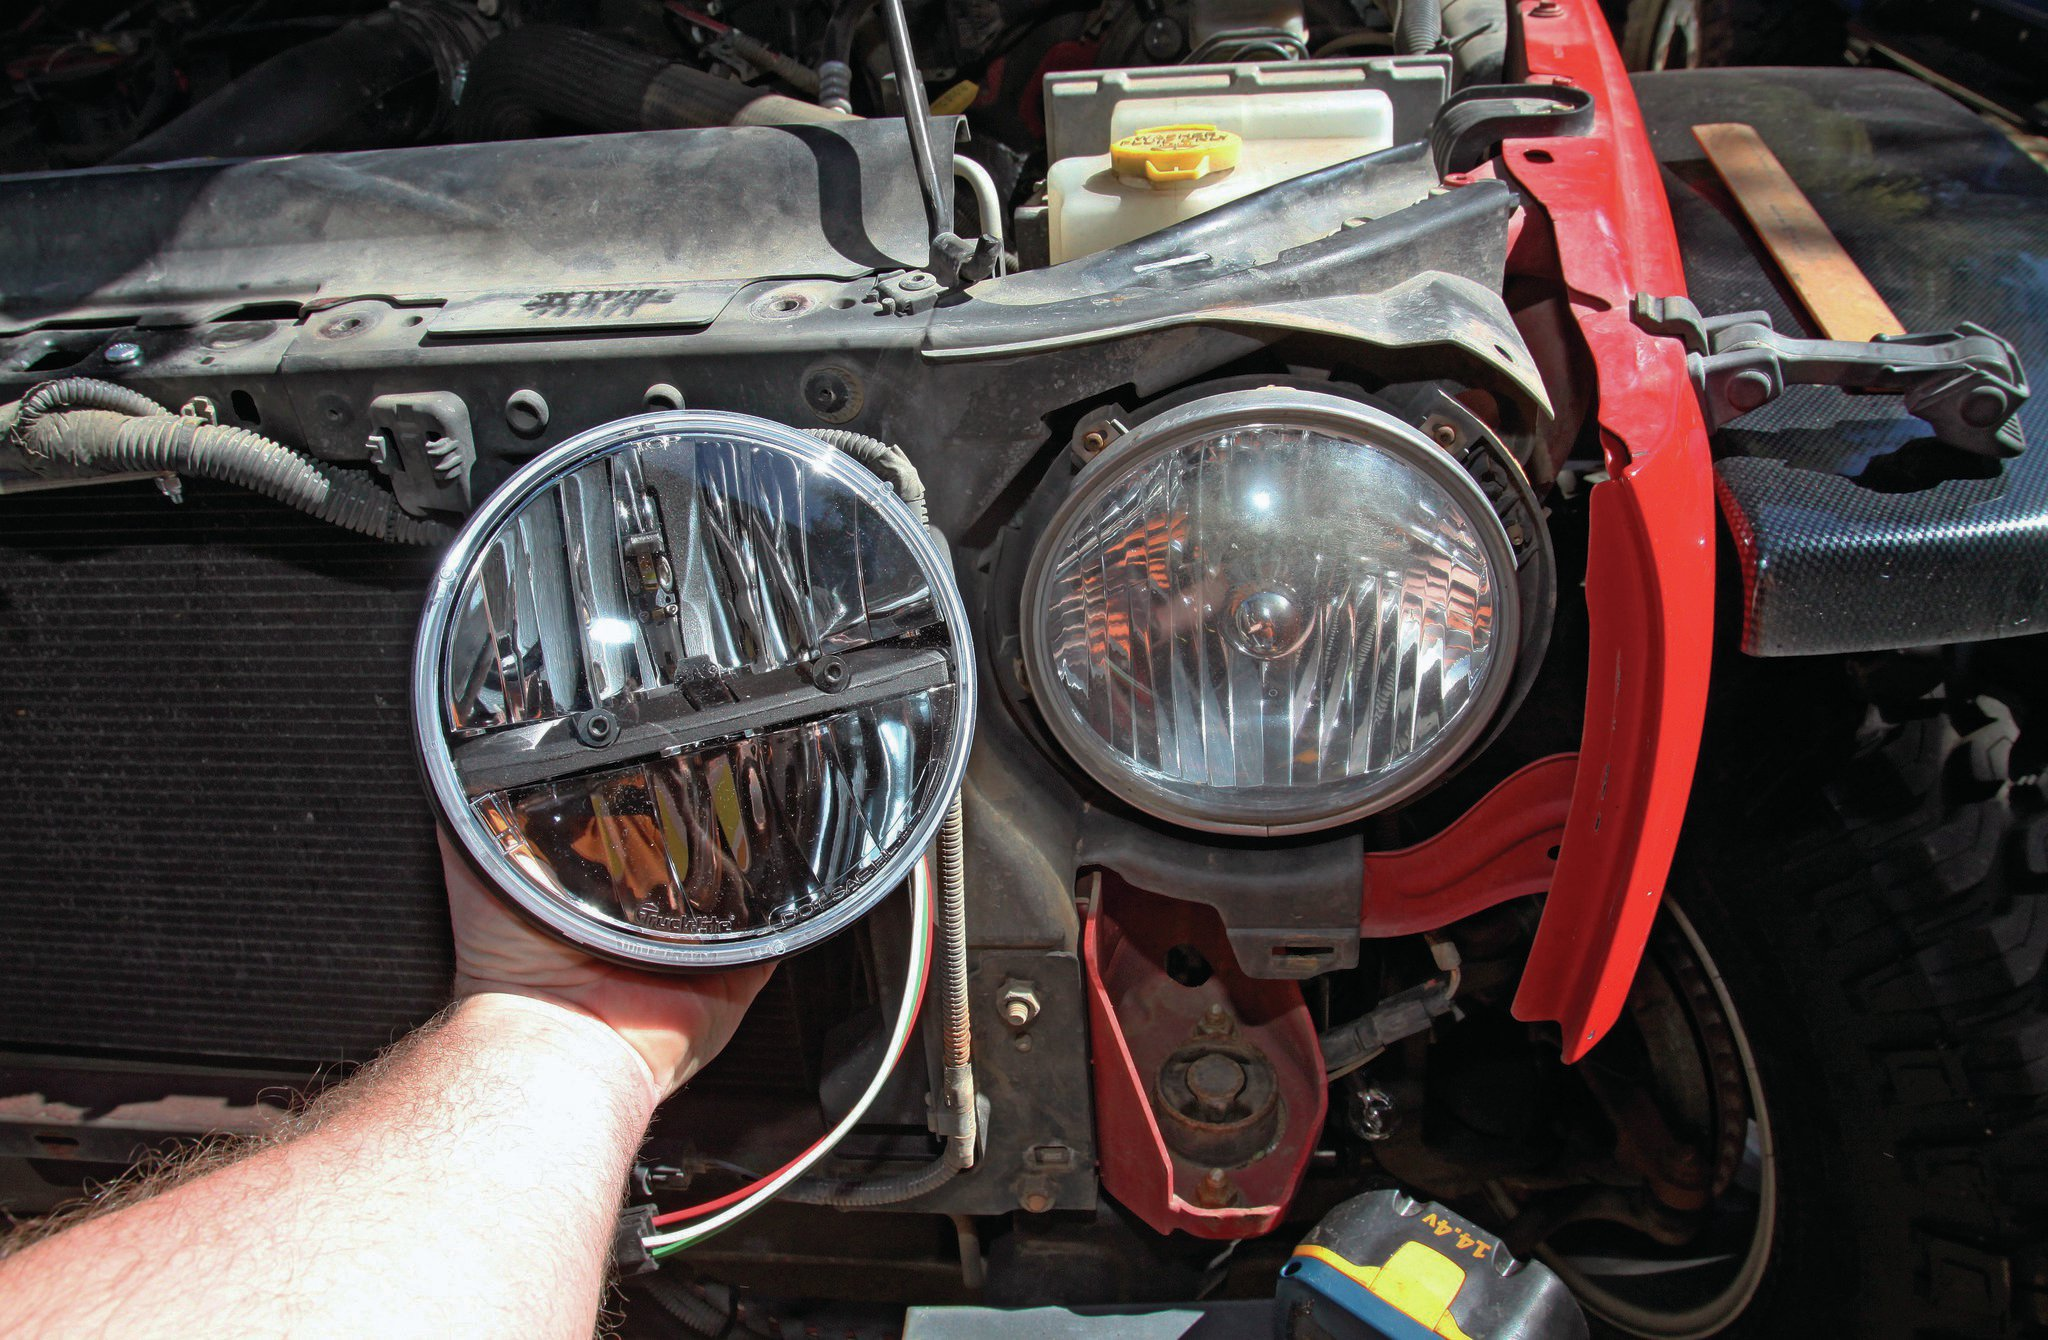 When the JK came out, I really loved the headlights. By 2014, this '07's headlights were sun-faded, with micro-cracks that no amount of buffing would clear up. I ended up driving around on high beams nearly all the time. I replaced the stockers with Truck-Lite's 7-inch round LEDs (PN 27270C). They might be the best round headlights I've ever had in a Jeep. The pattern cutoff on low beam is amazingly flat and the angle of coverage is actually over 180 degrees.